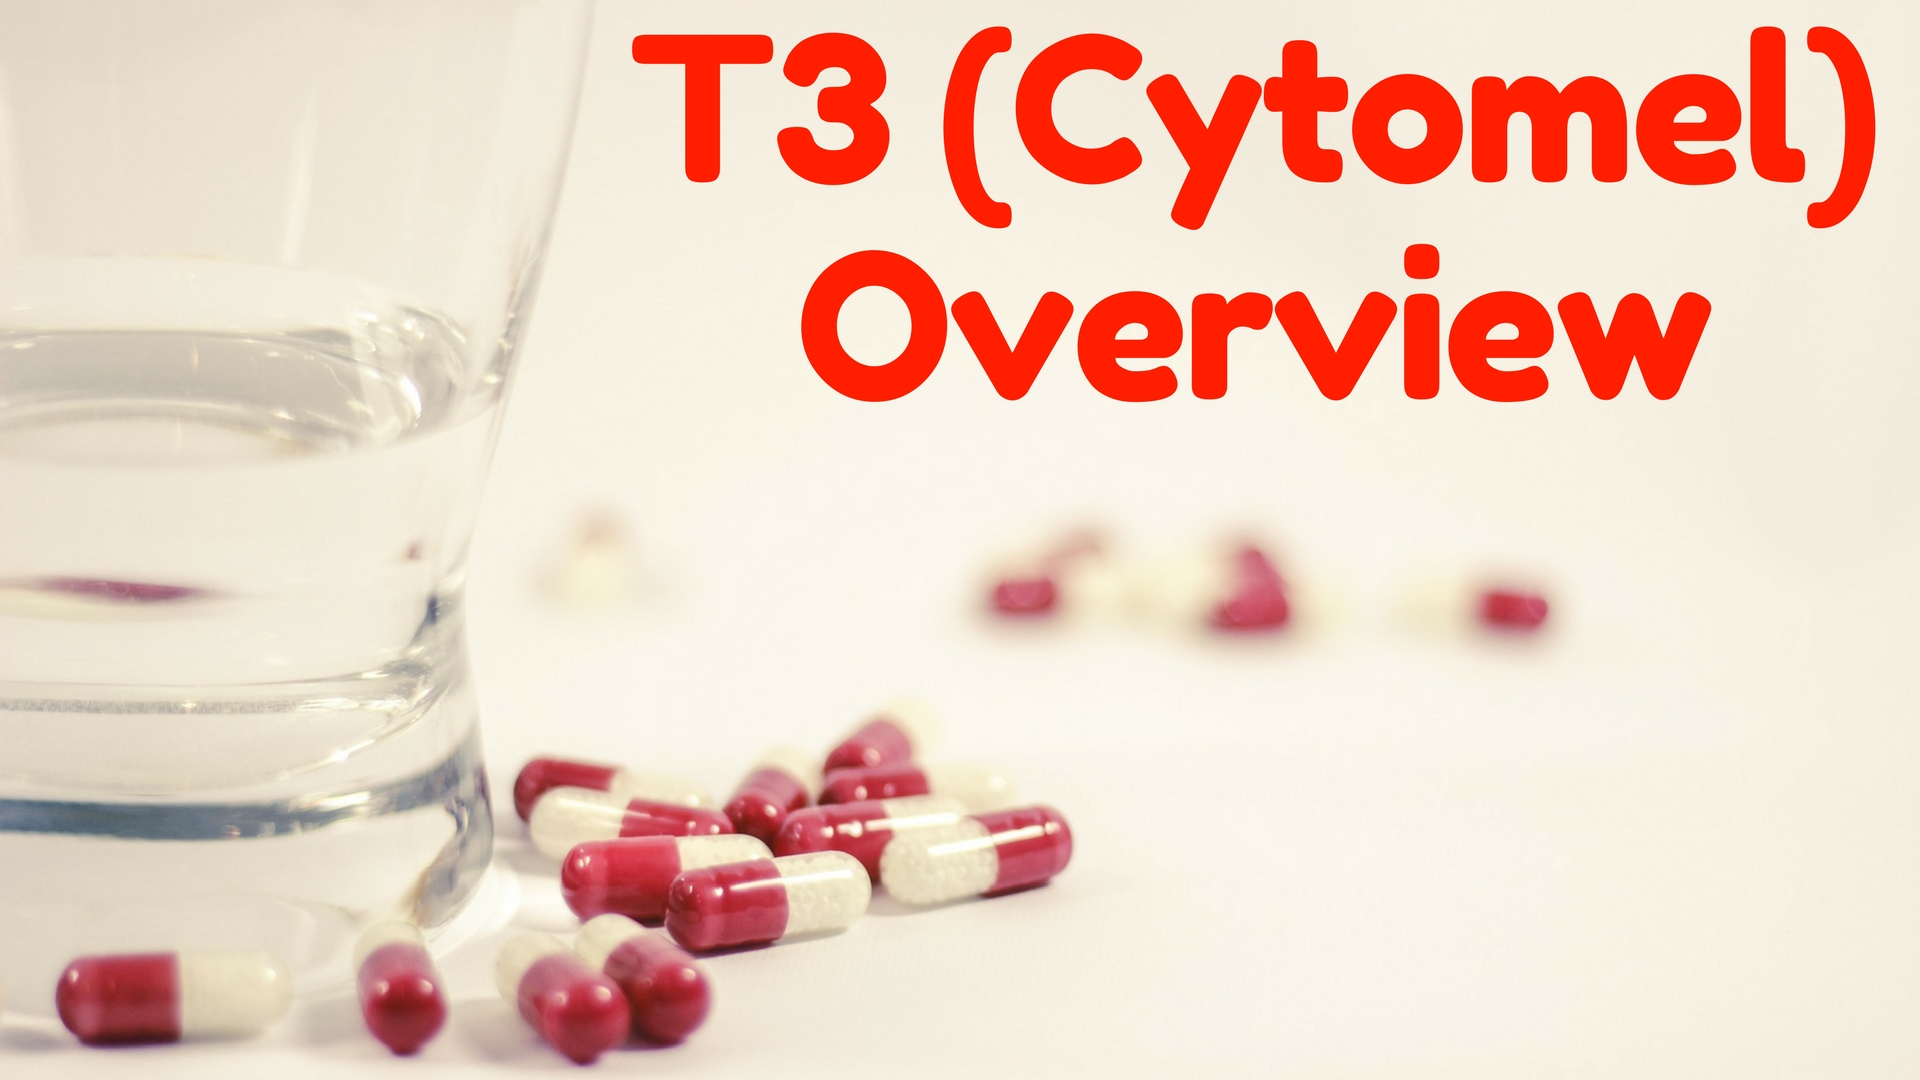 T3 Cytomel Overview What To Expect